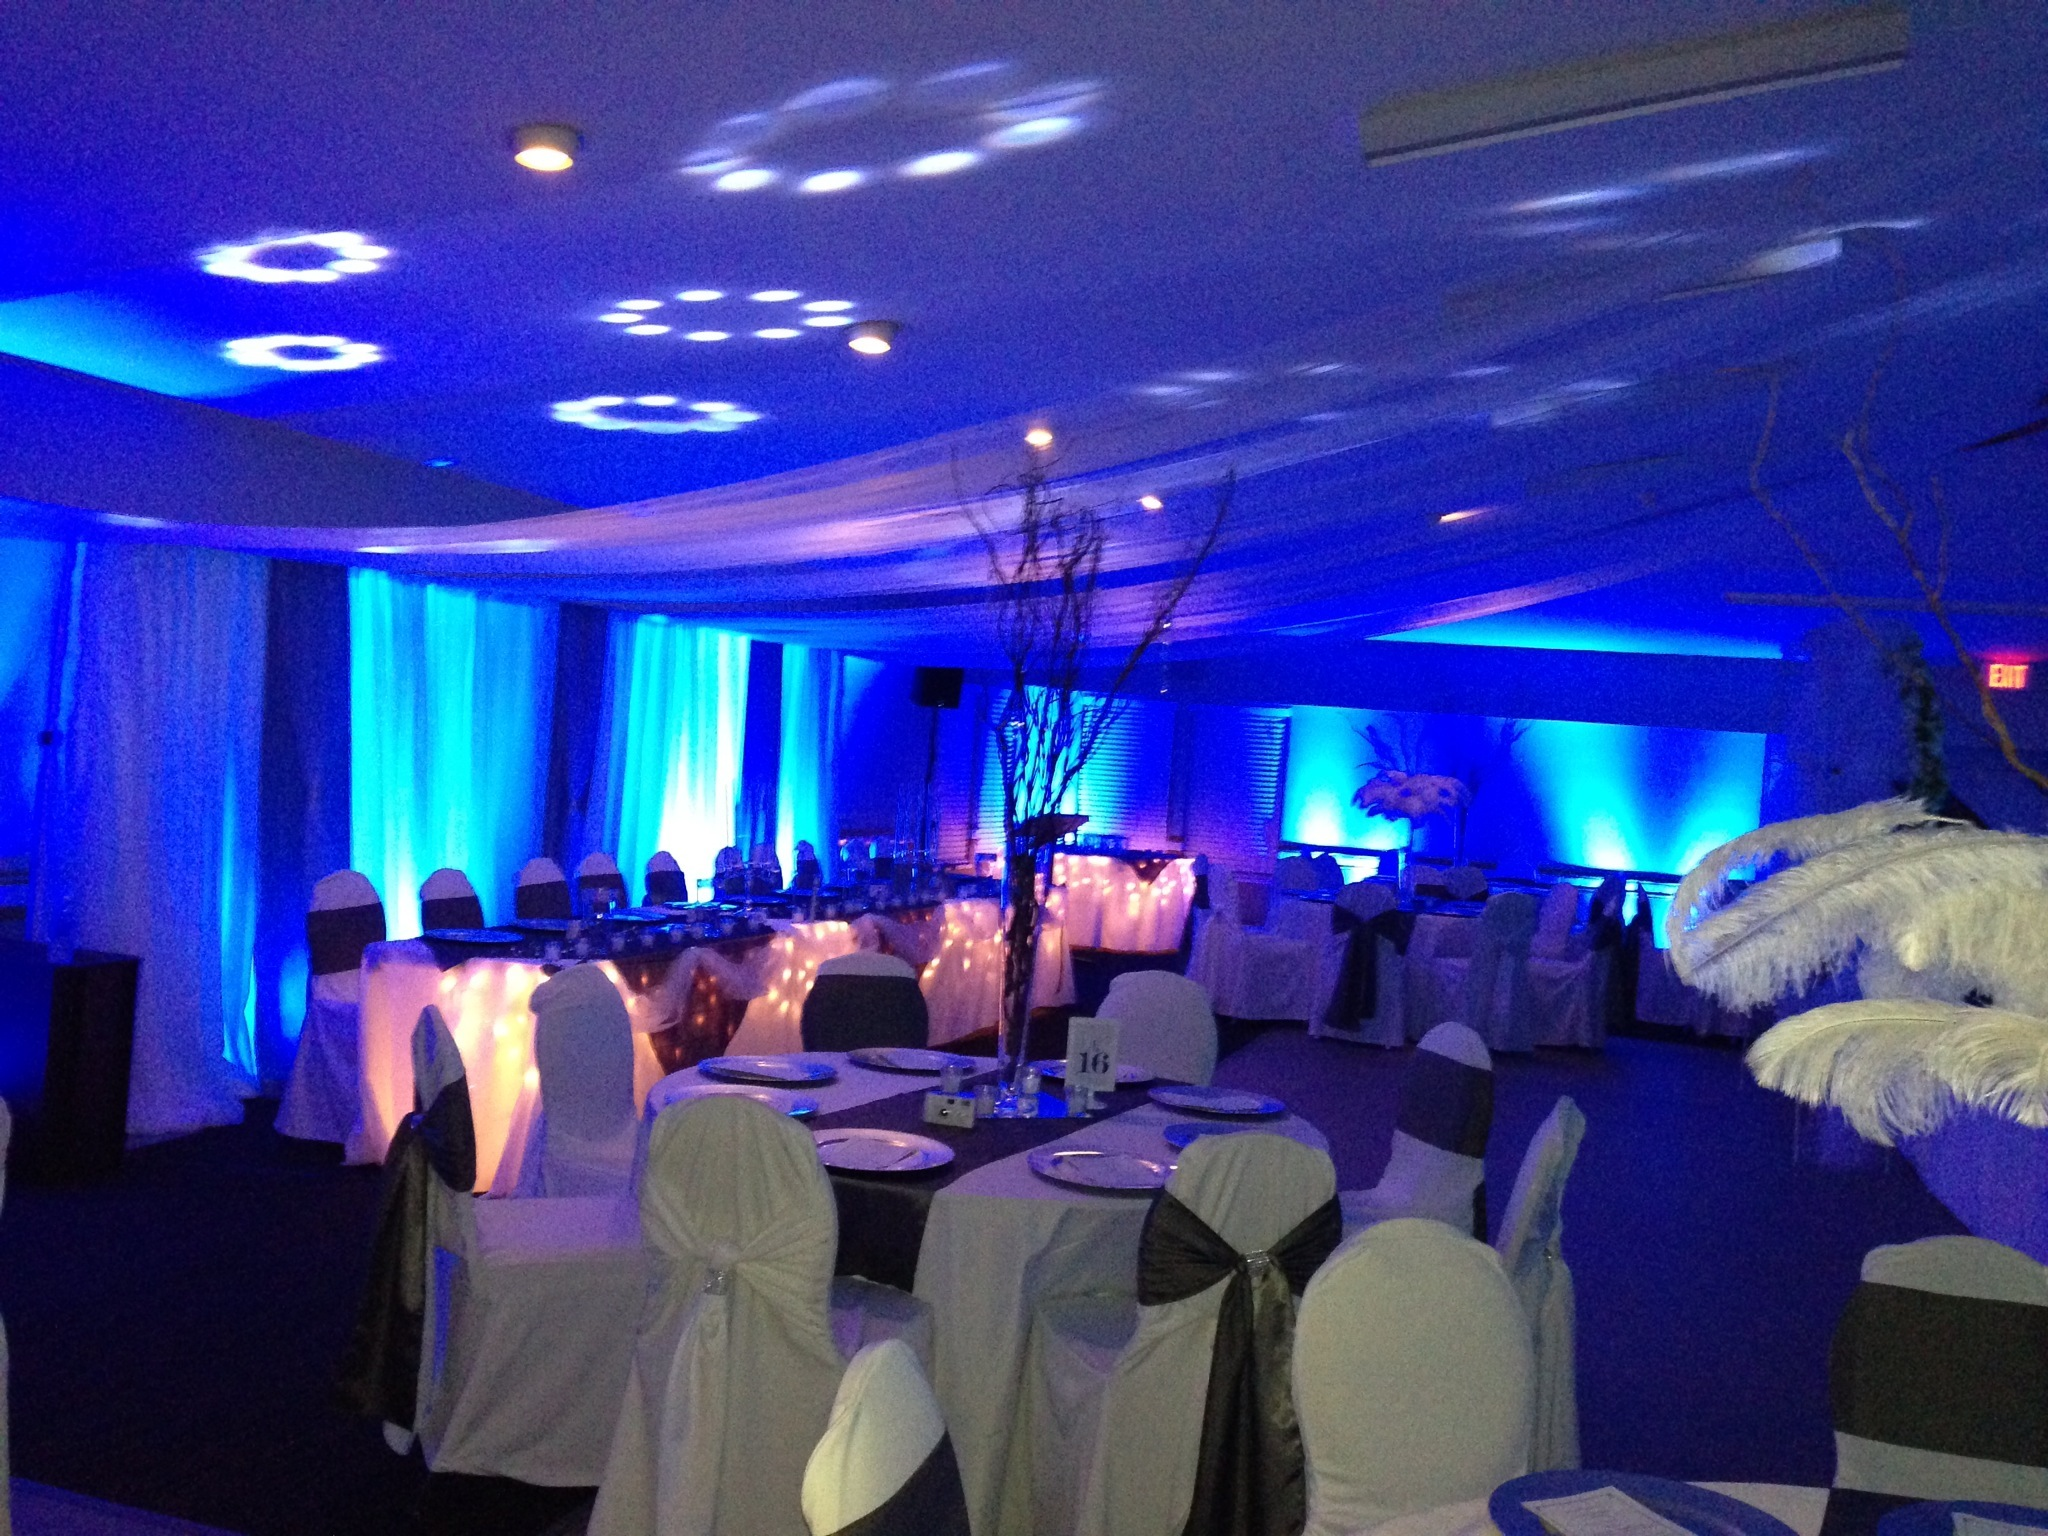 Decor set up with uplighting